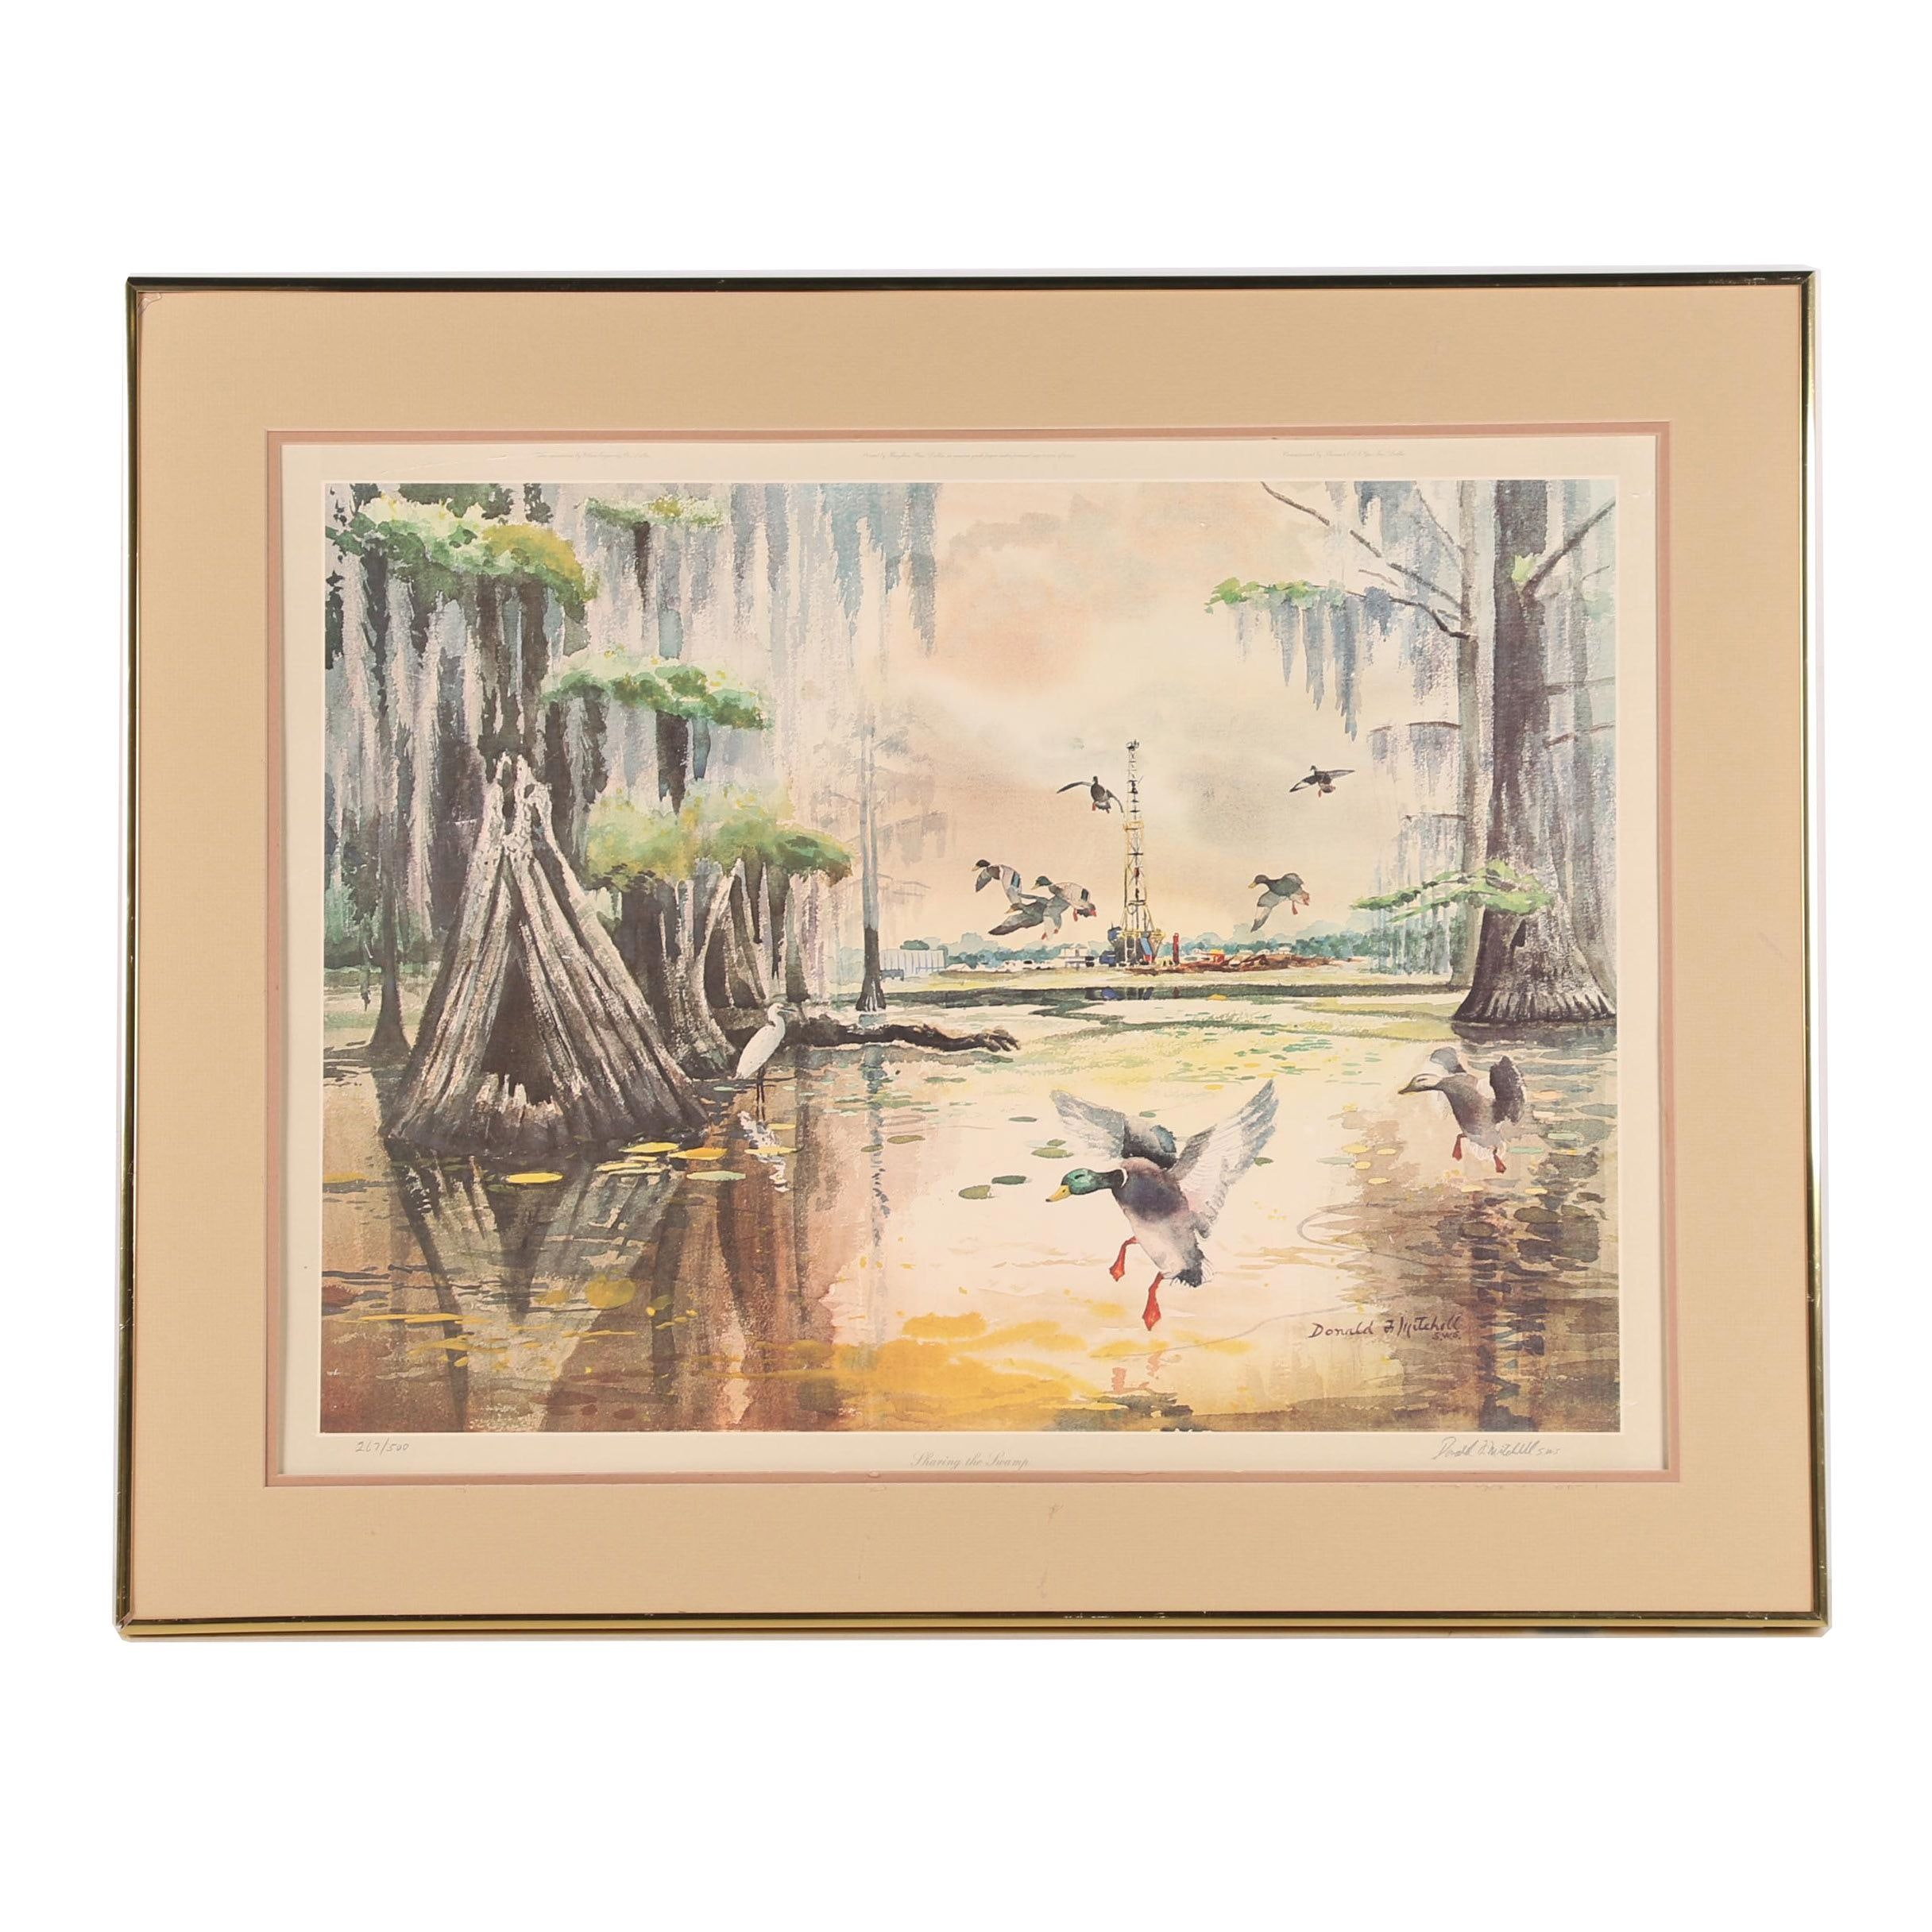 """Donald Mitchell Offset Lithograph """"Sharing the Swamp"""""""